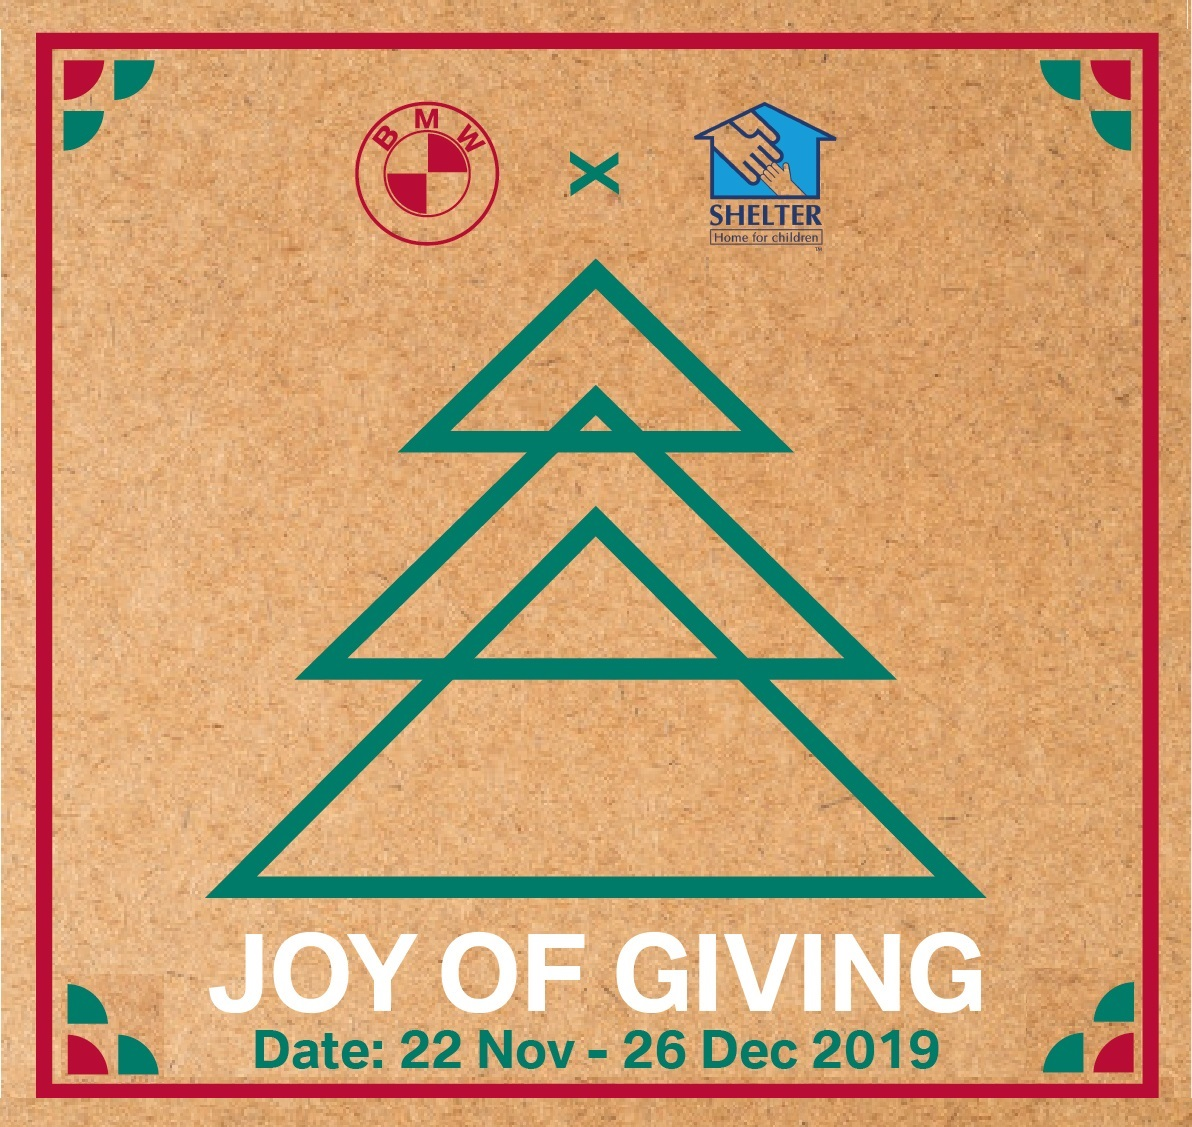 BMW Joy of Giving